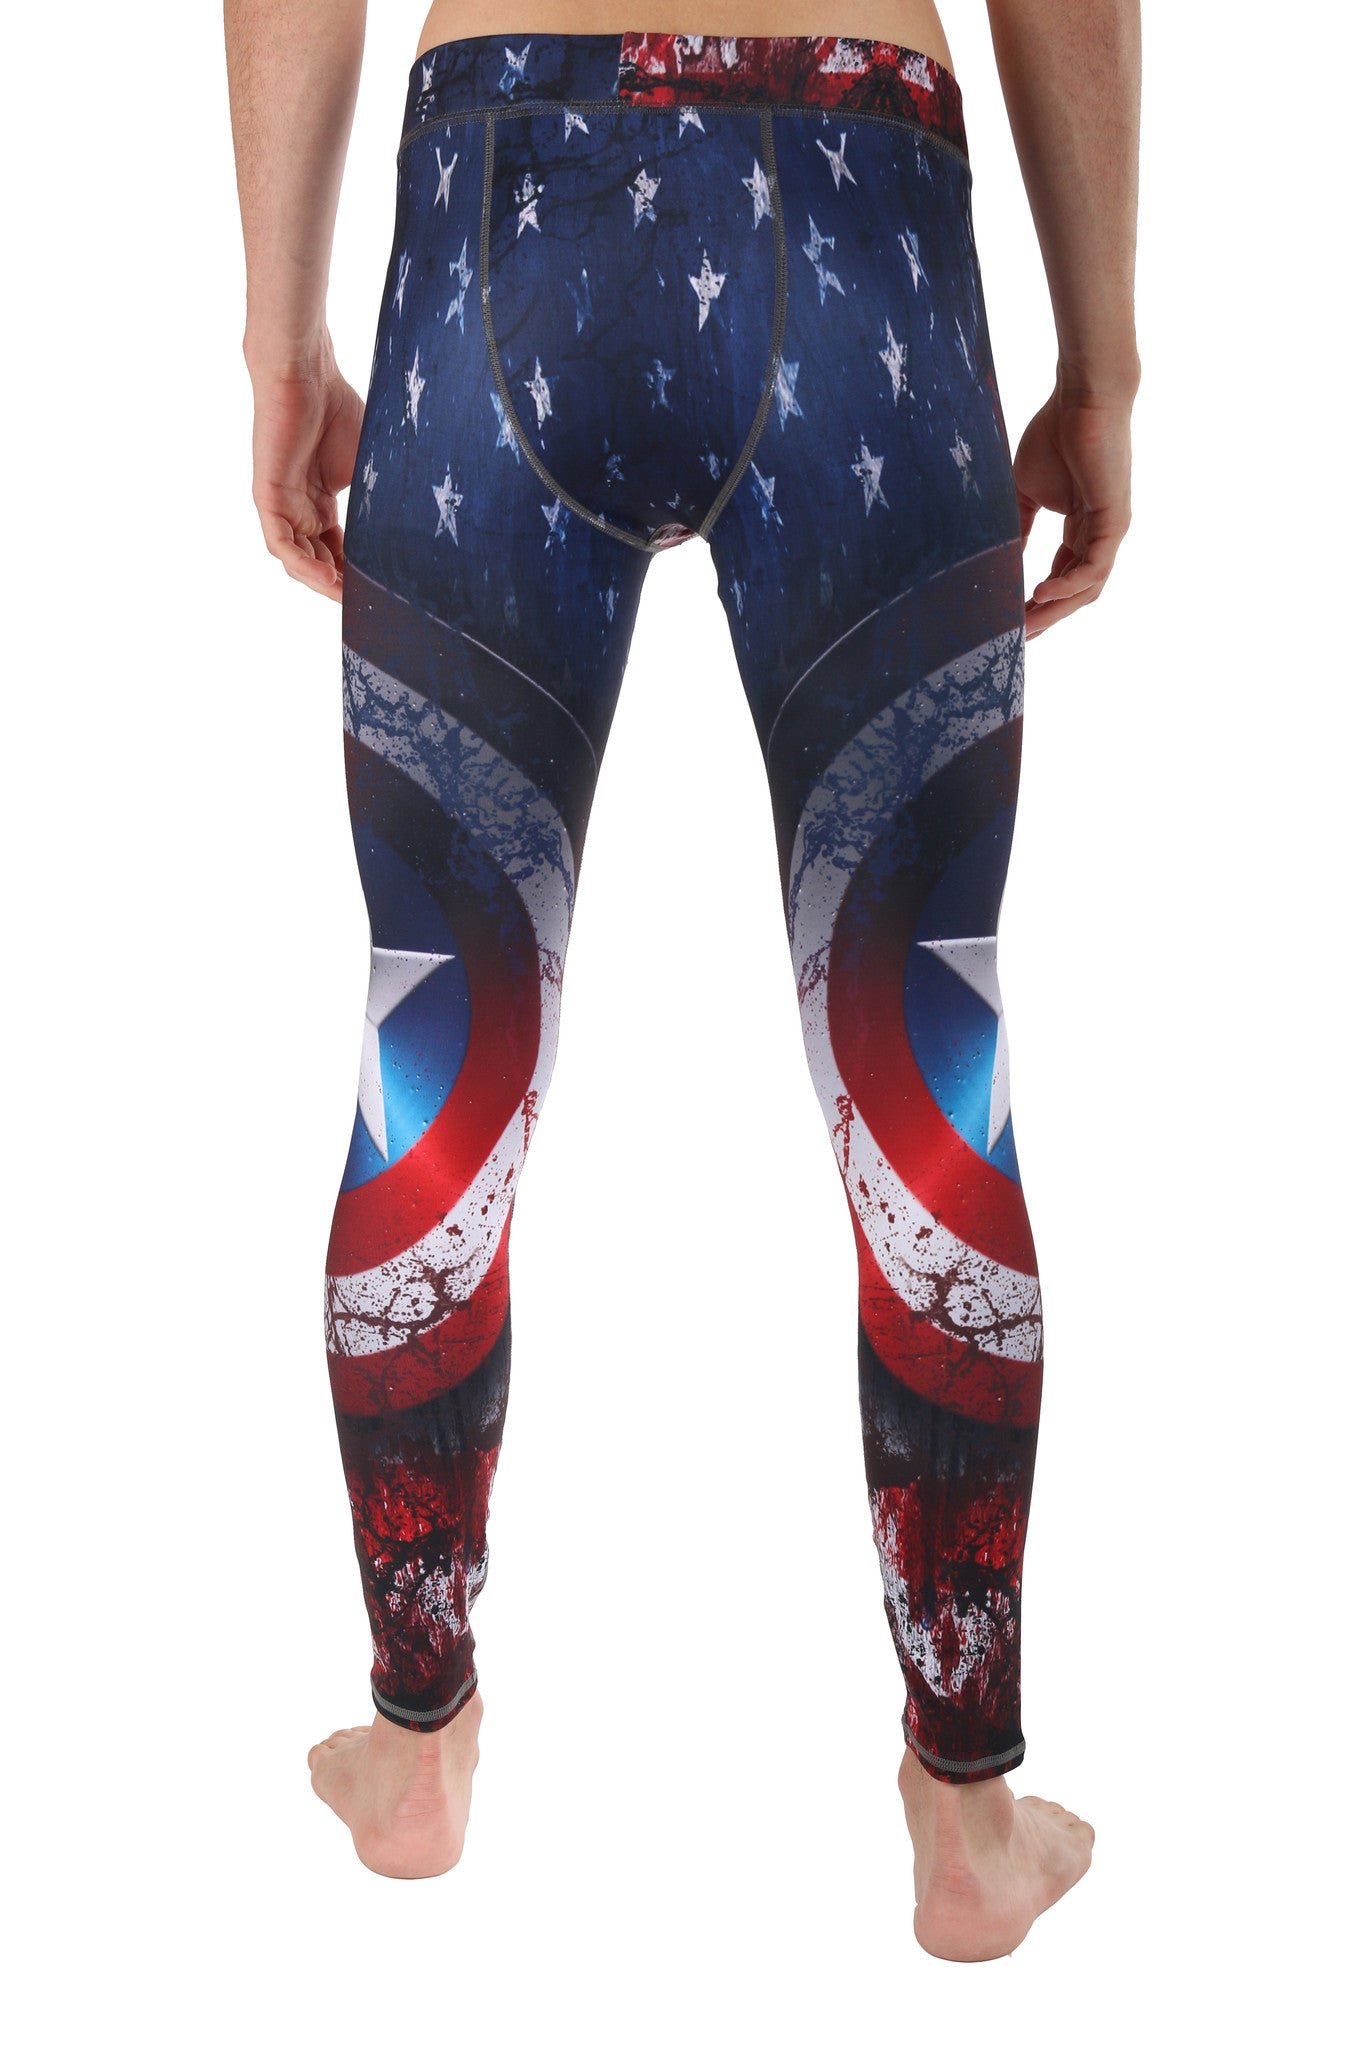 Super Hero Yoga Pants- Captain America Men's Legging. Find this beast pattern in the I'm A Patriot LavaLoka Collection.